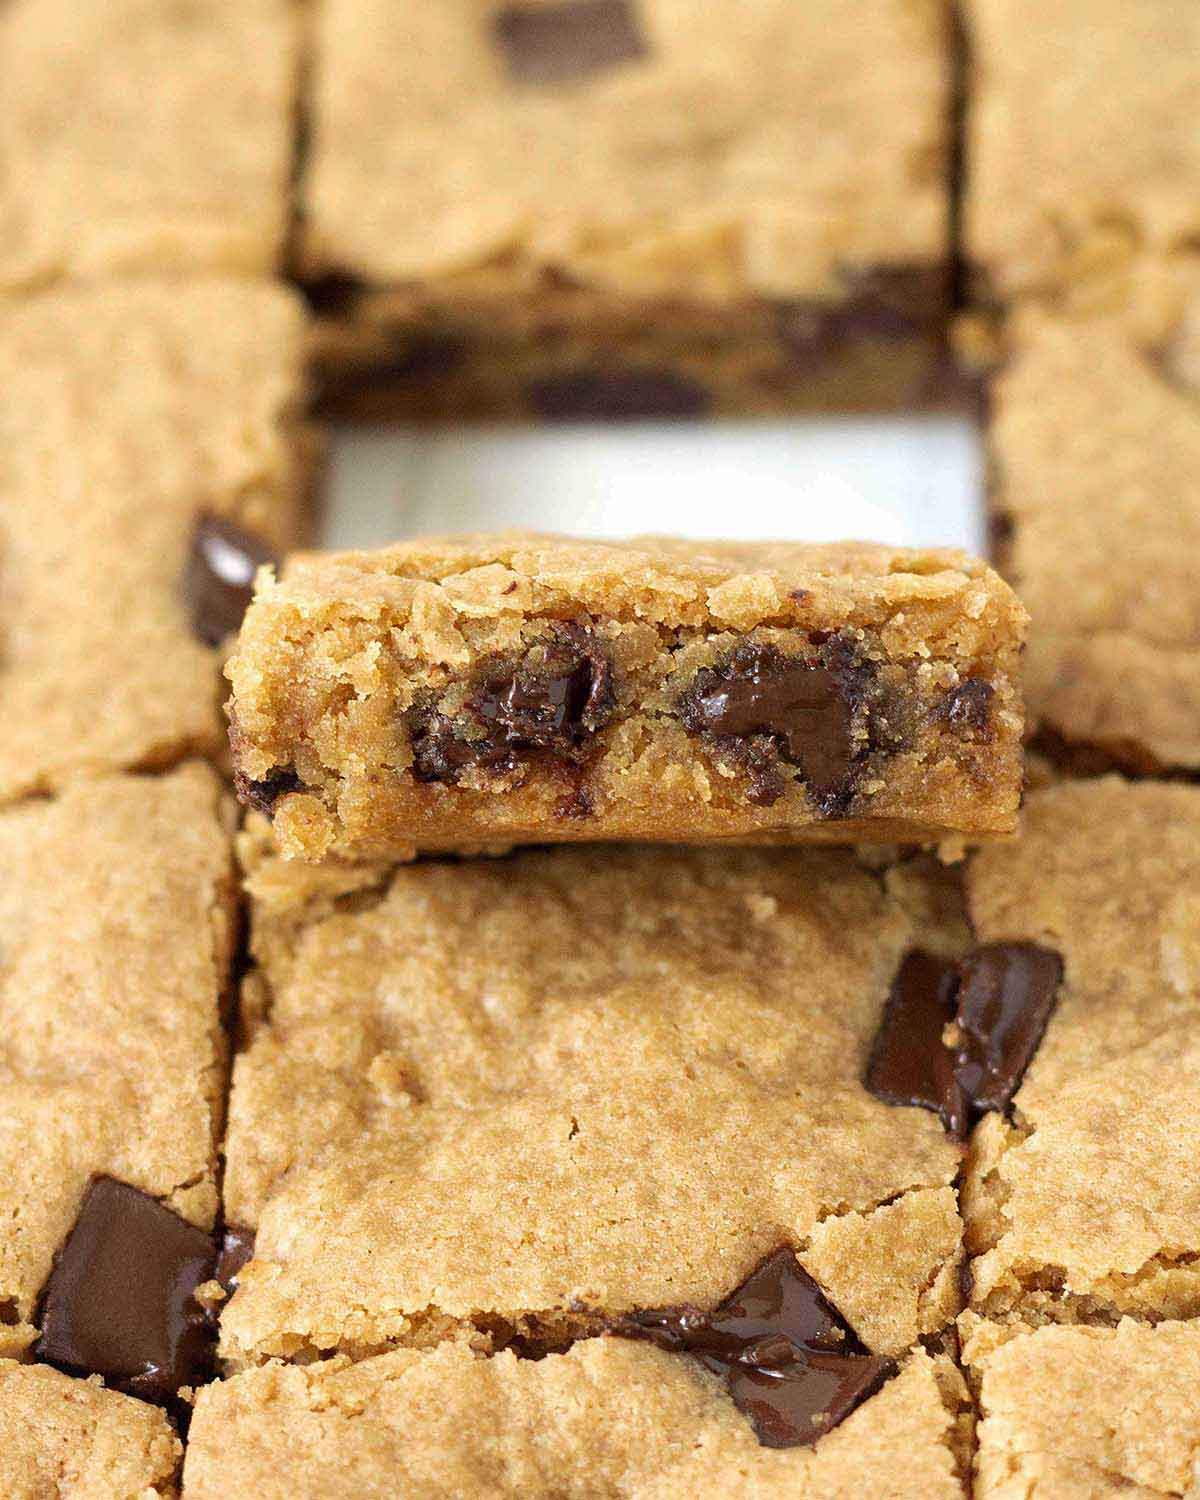 Image shows vegan gluten-free blondies, one blondie is tilted up to show the chewy inside and melty chocolate chunks inside.